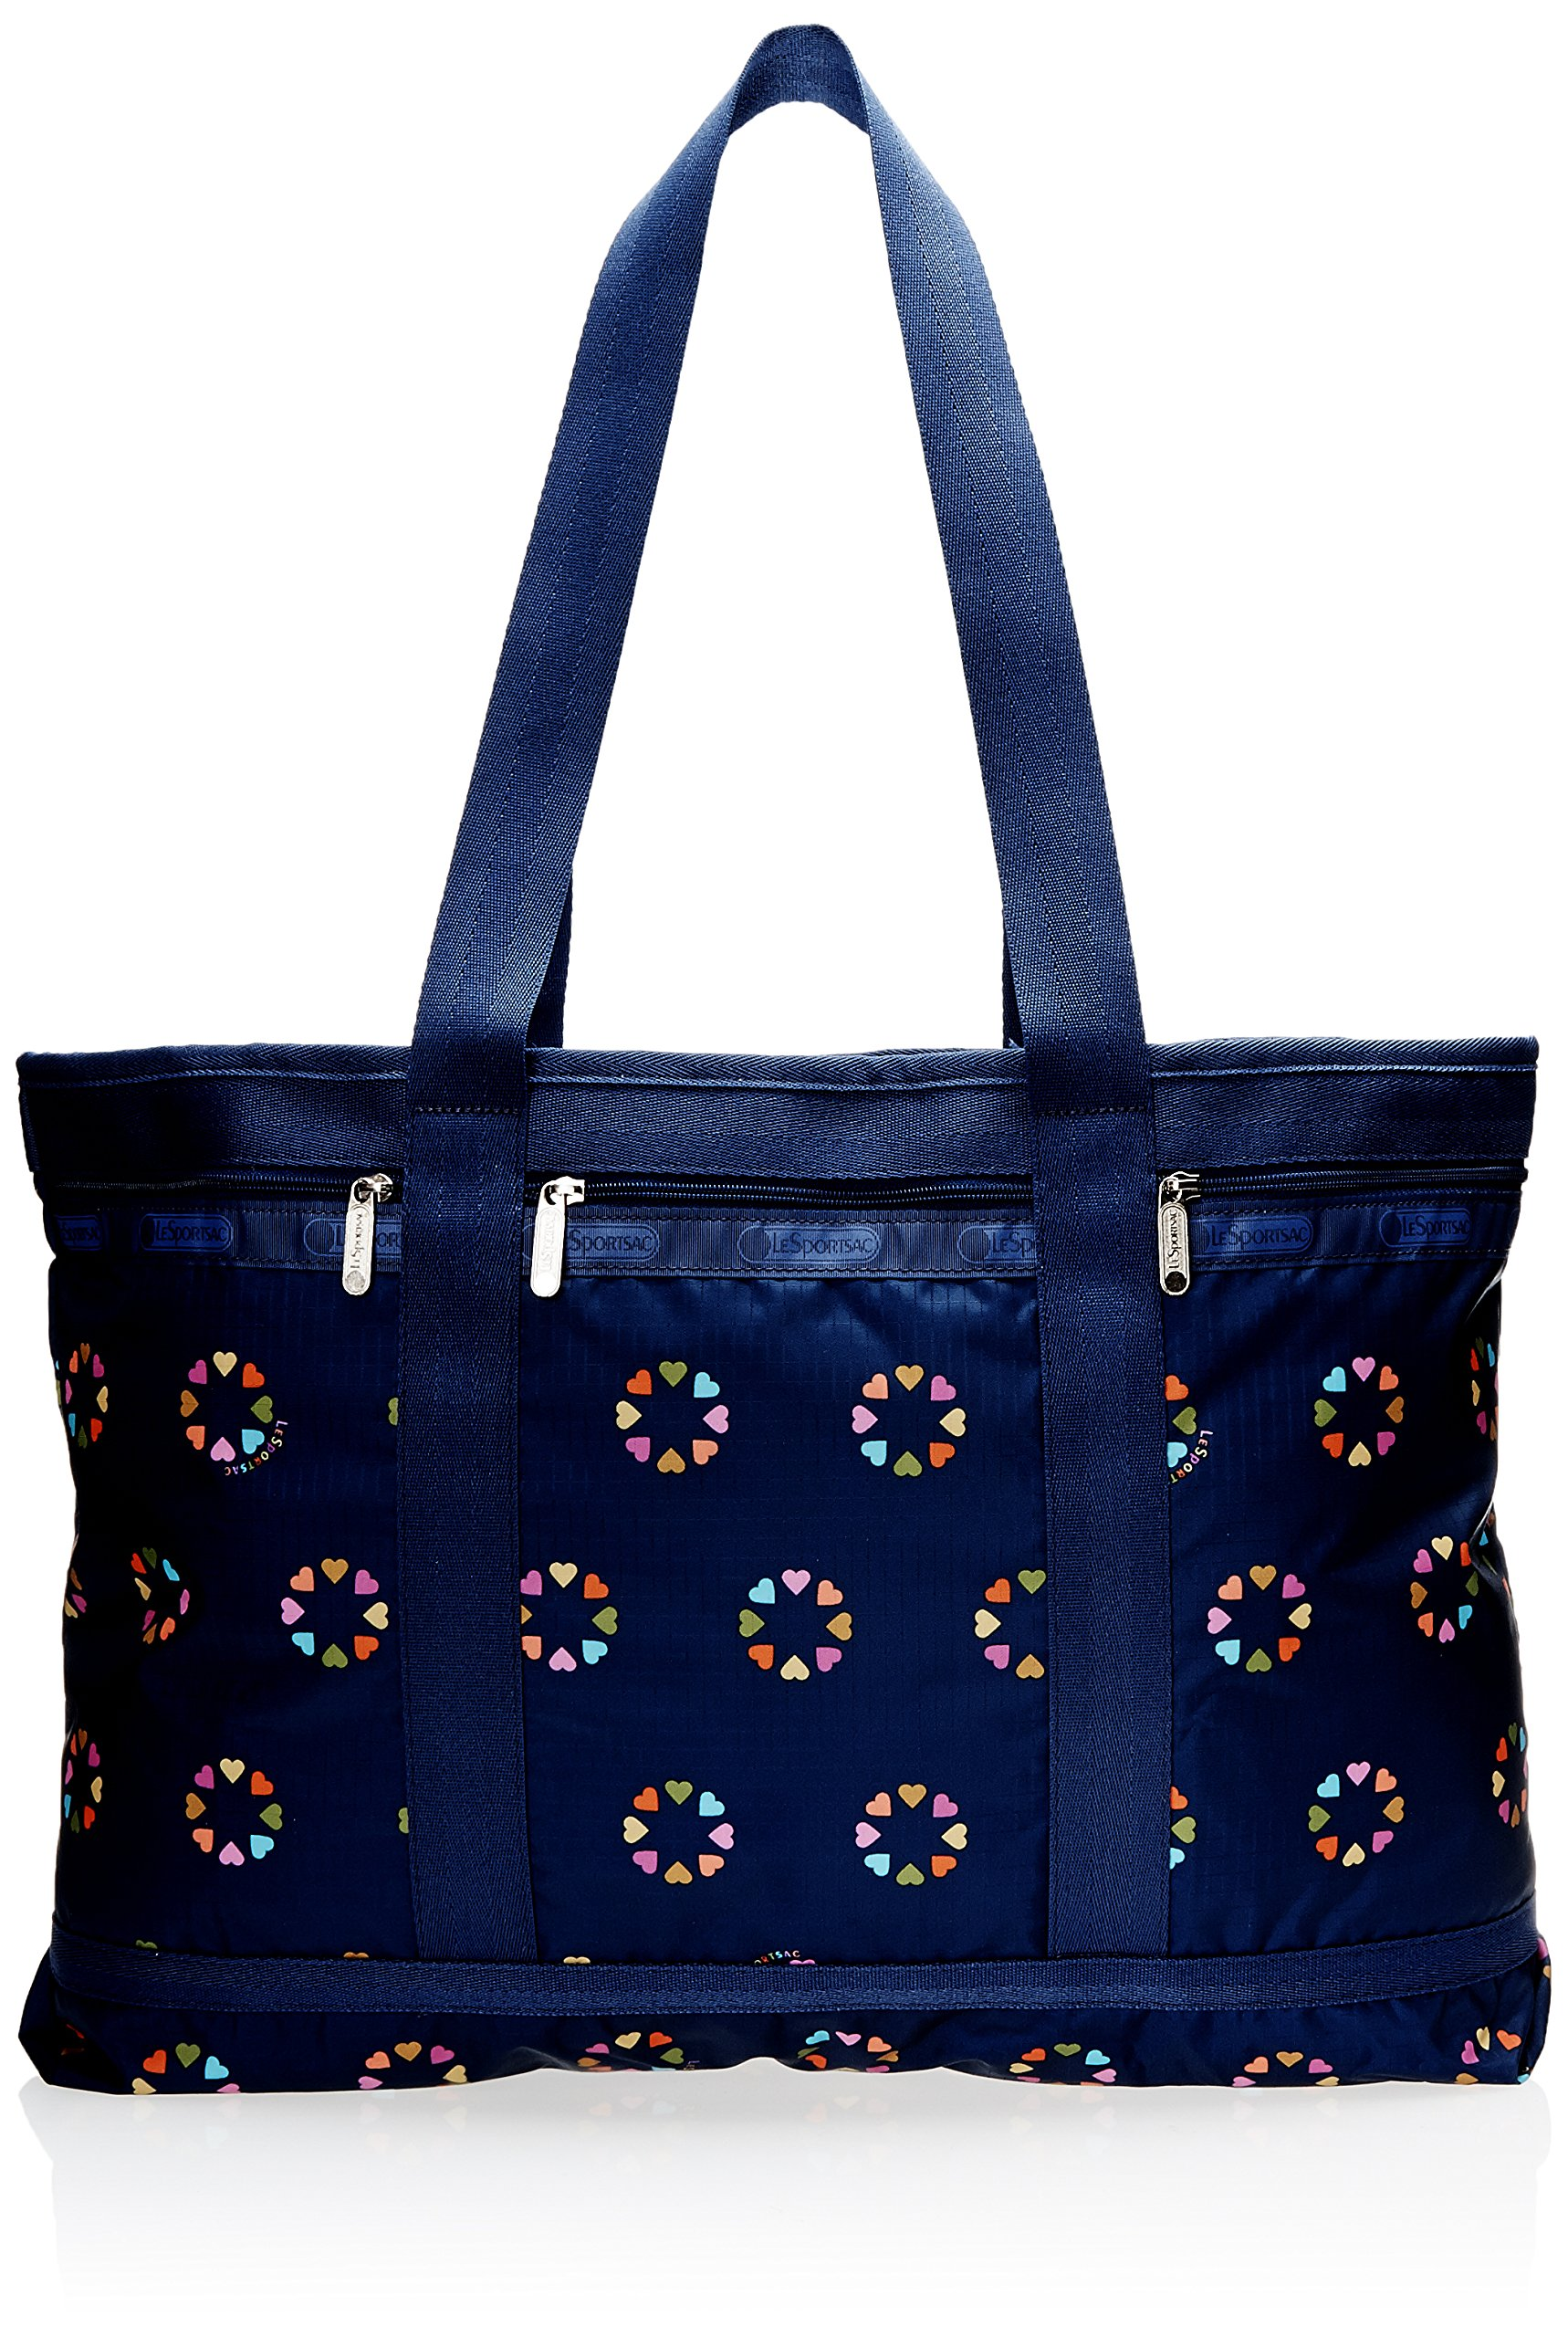 LeSportsac Travel Tote, Happy Hearts, One Size